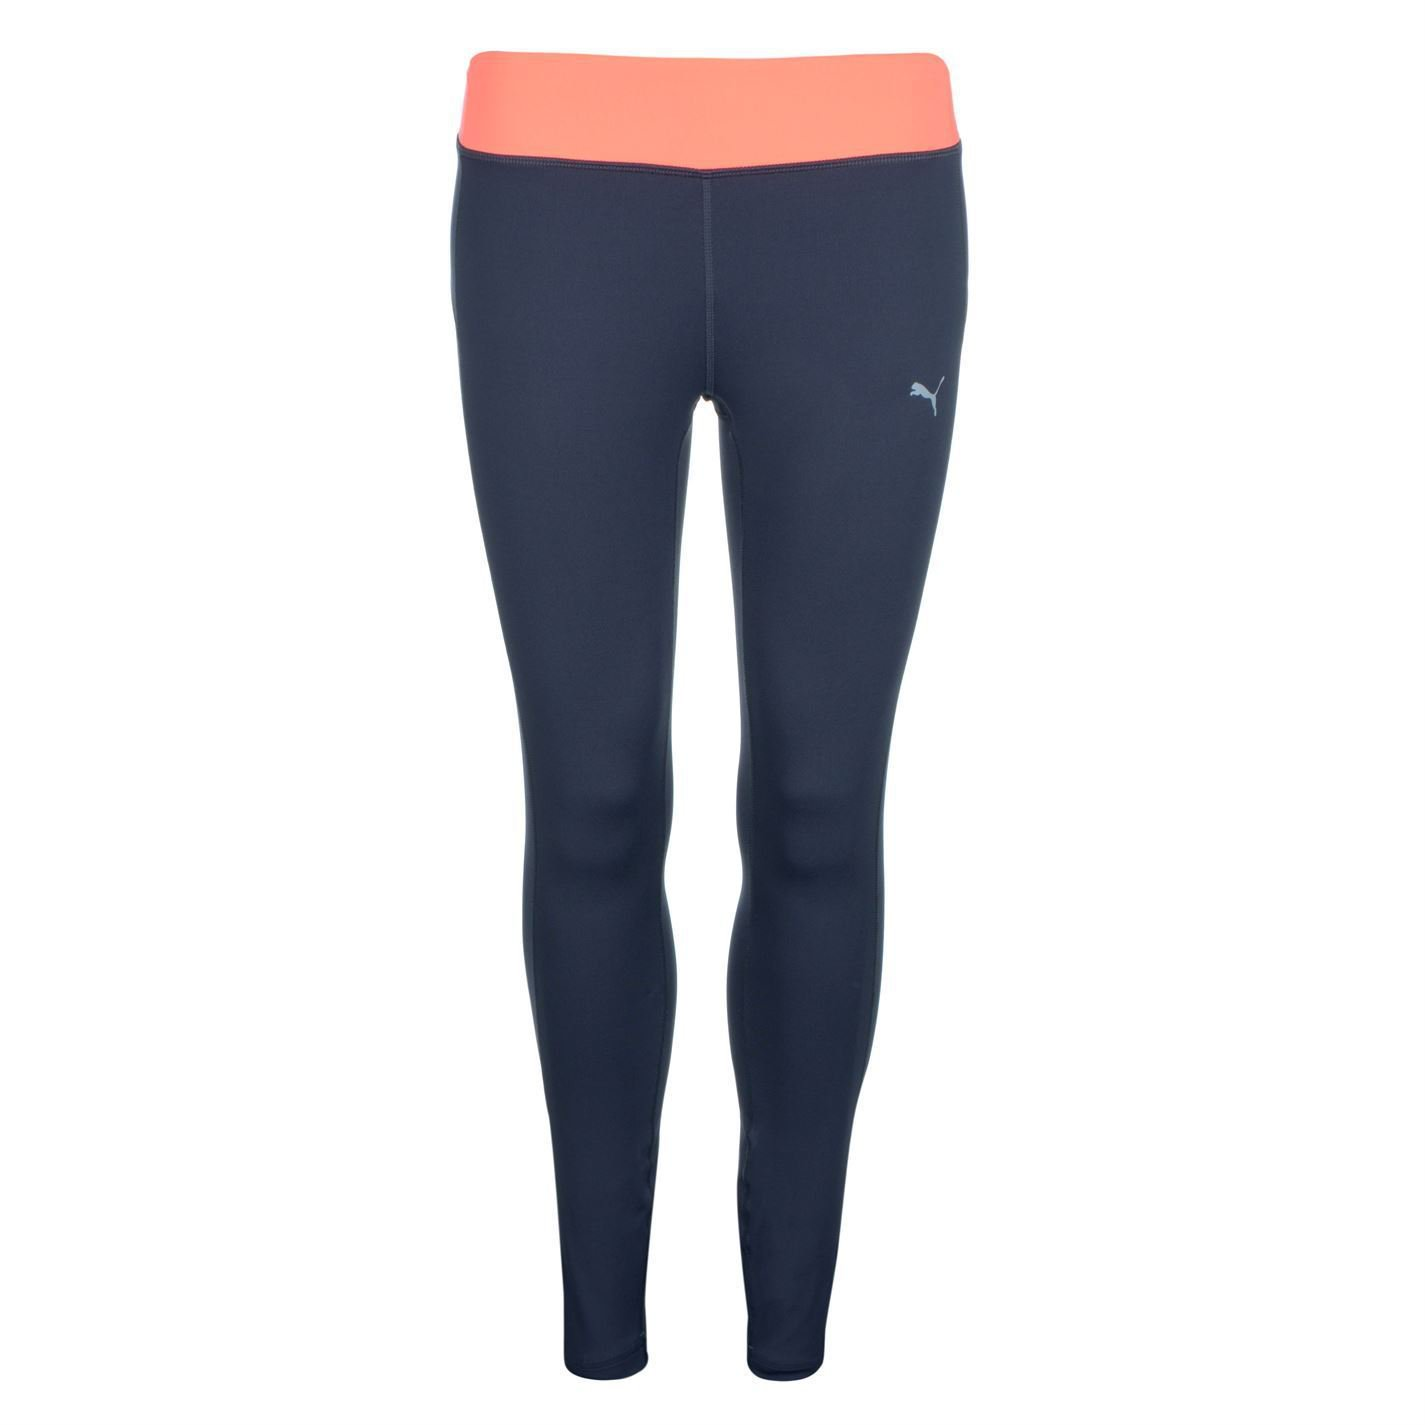 Puma Womens Ladies Essential Gym Training Tight Pants Bottoms Running Workout